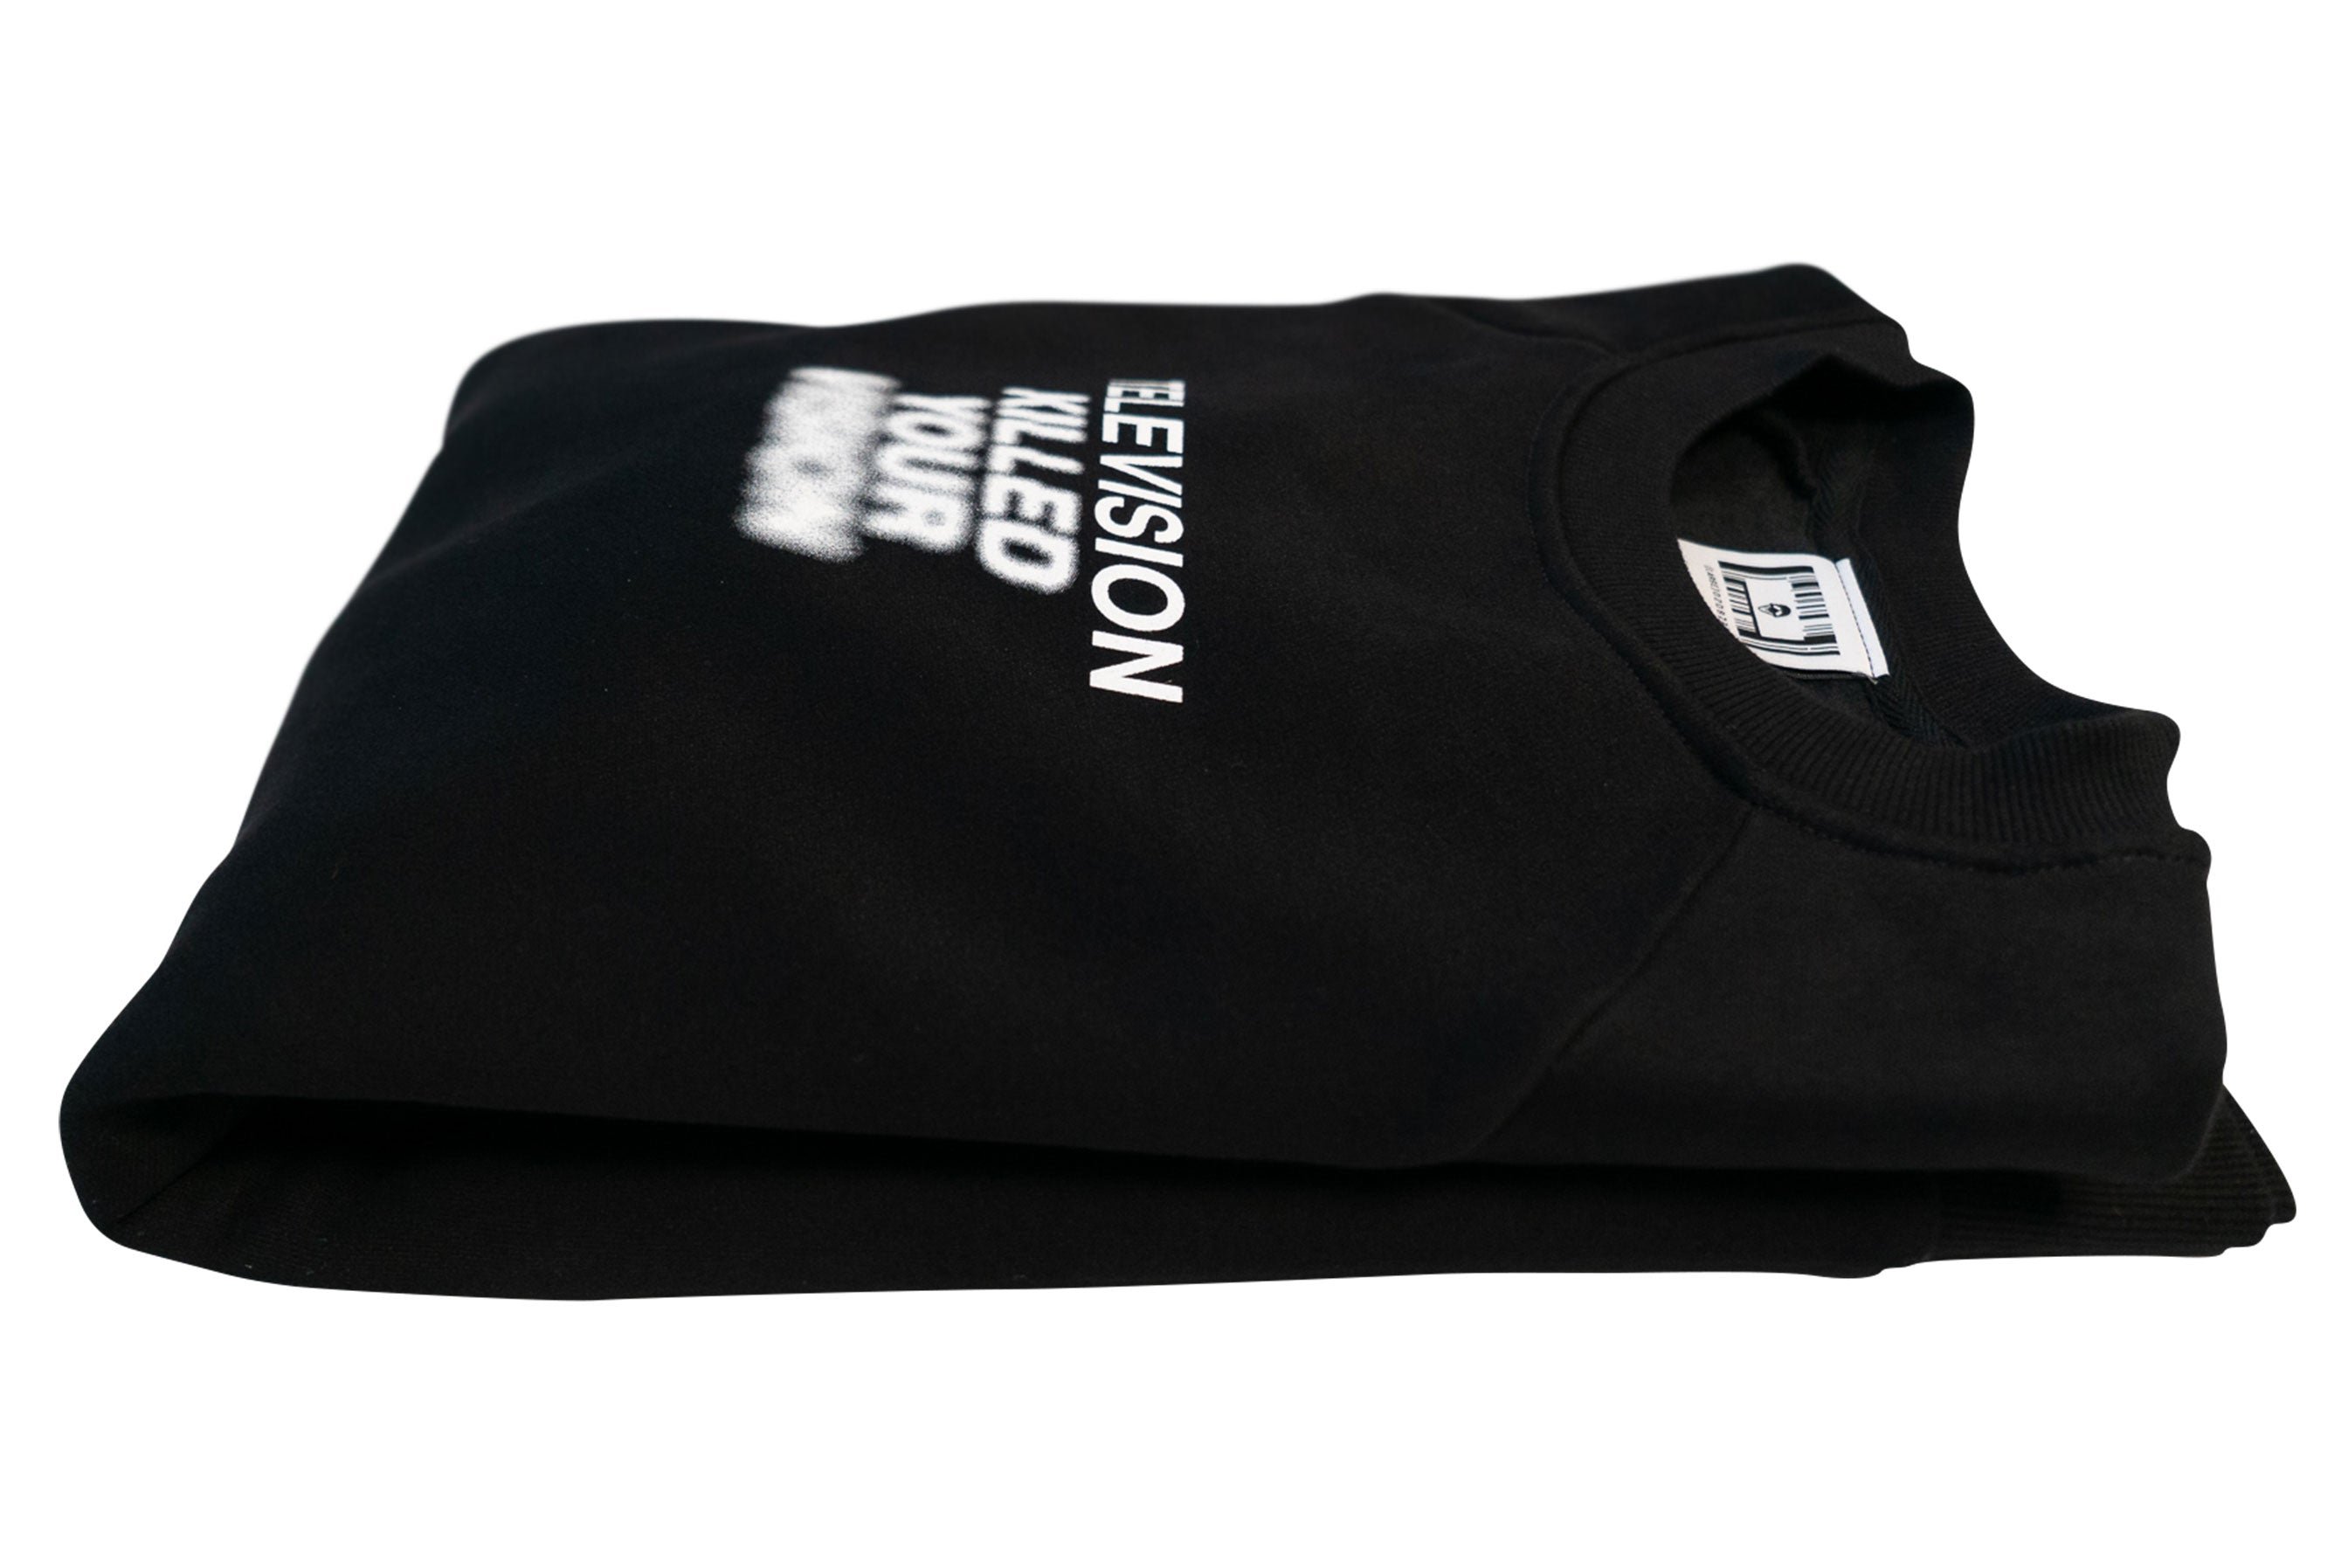 TELEVISION KILLED YOUR VISION SWEATSHIRT // BLACK